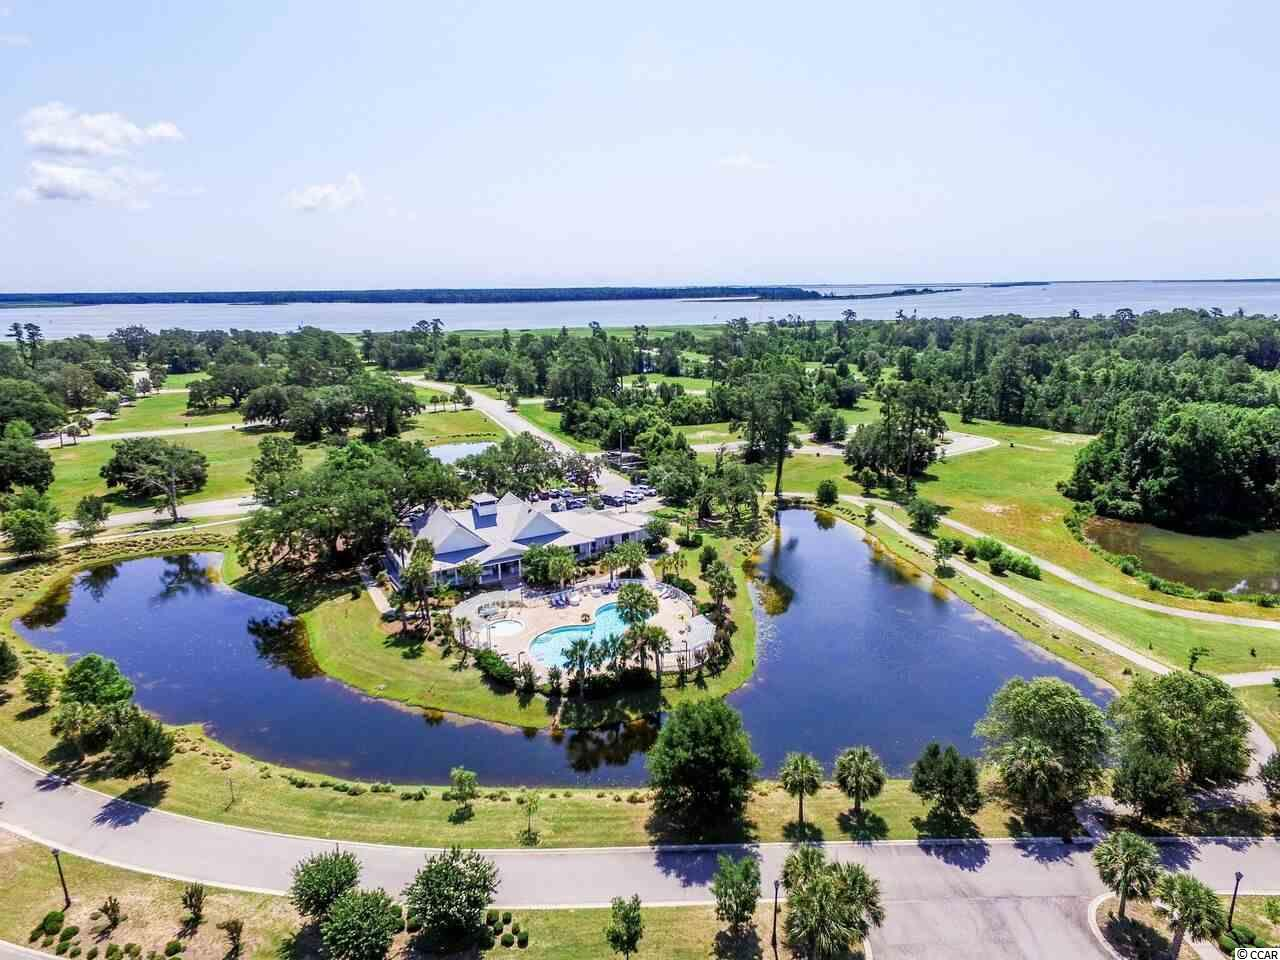 BIG PRICE REDUCTION!!! Located in South Island Plantation, a gated community located along Winyah Bay and the Intracoastal Waterway, near Historic Georgetown, SC. Community amenities include a pool, kiddie pool and hot tub. There is also a 5000 sq ft club house with an equipped fitness center, a bar and a full kitchen. Walking trails wind throughout the community with gazebos for periodic resting.  A fishing/crabbin' gazebo is  now complete. A secured RV/ Boat storage area is available for property owners. Beautiful ponds for fishing and huge Oak Trees make this one of the premier communities in the Georgetown area. Natural gas is also available in South Island Plantation. Build your dream home today....